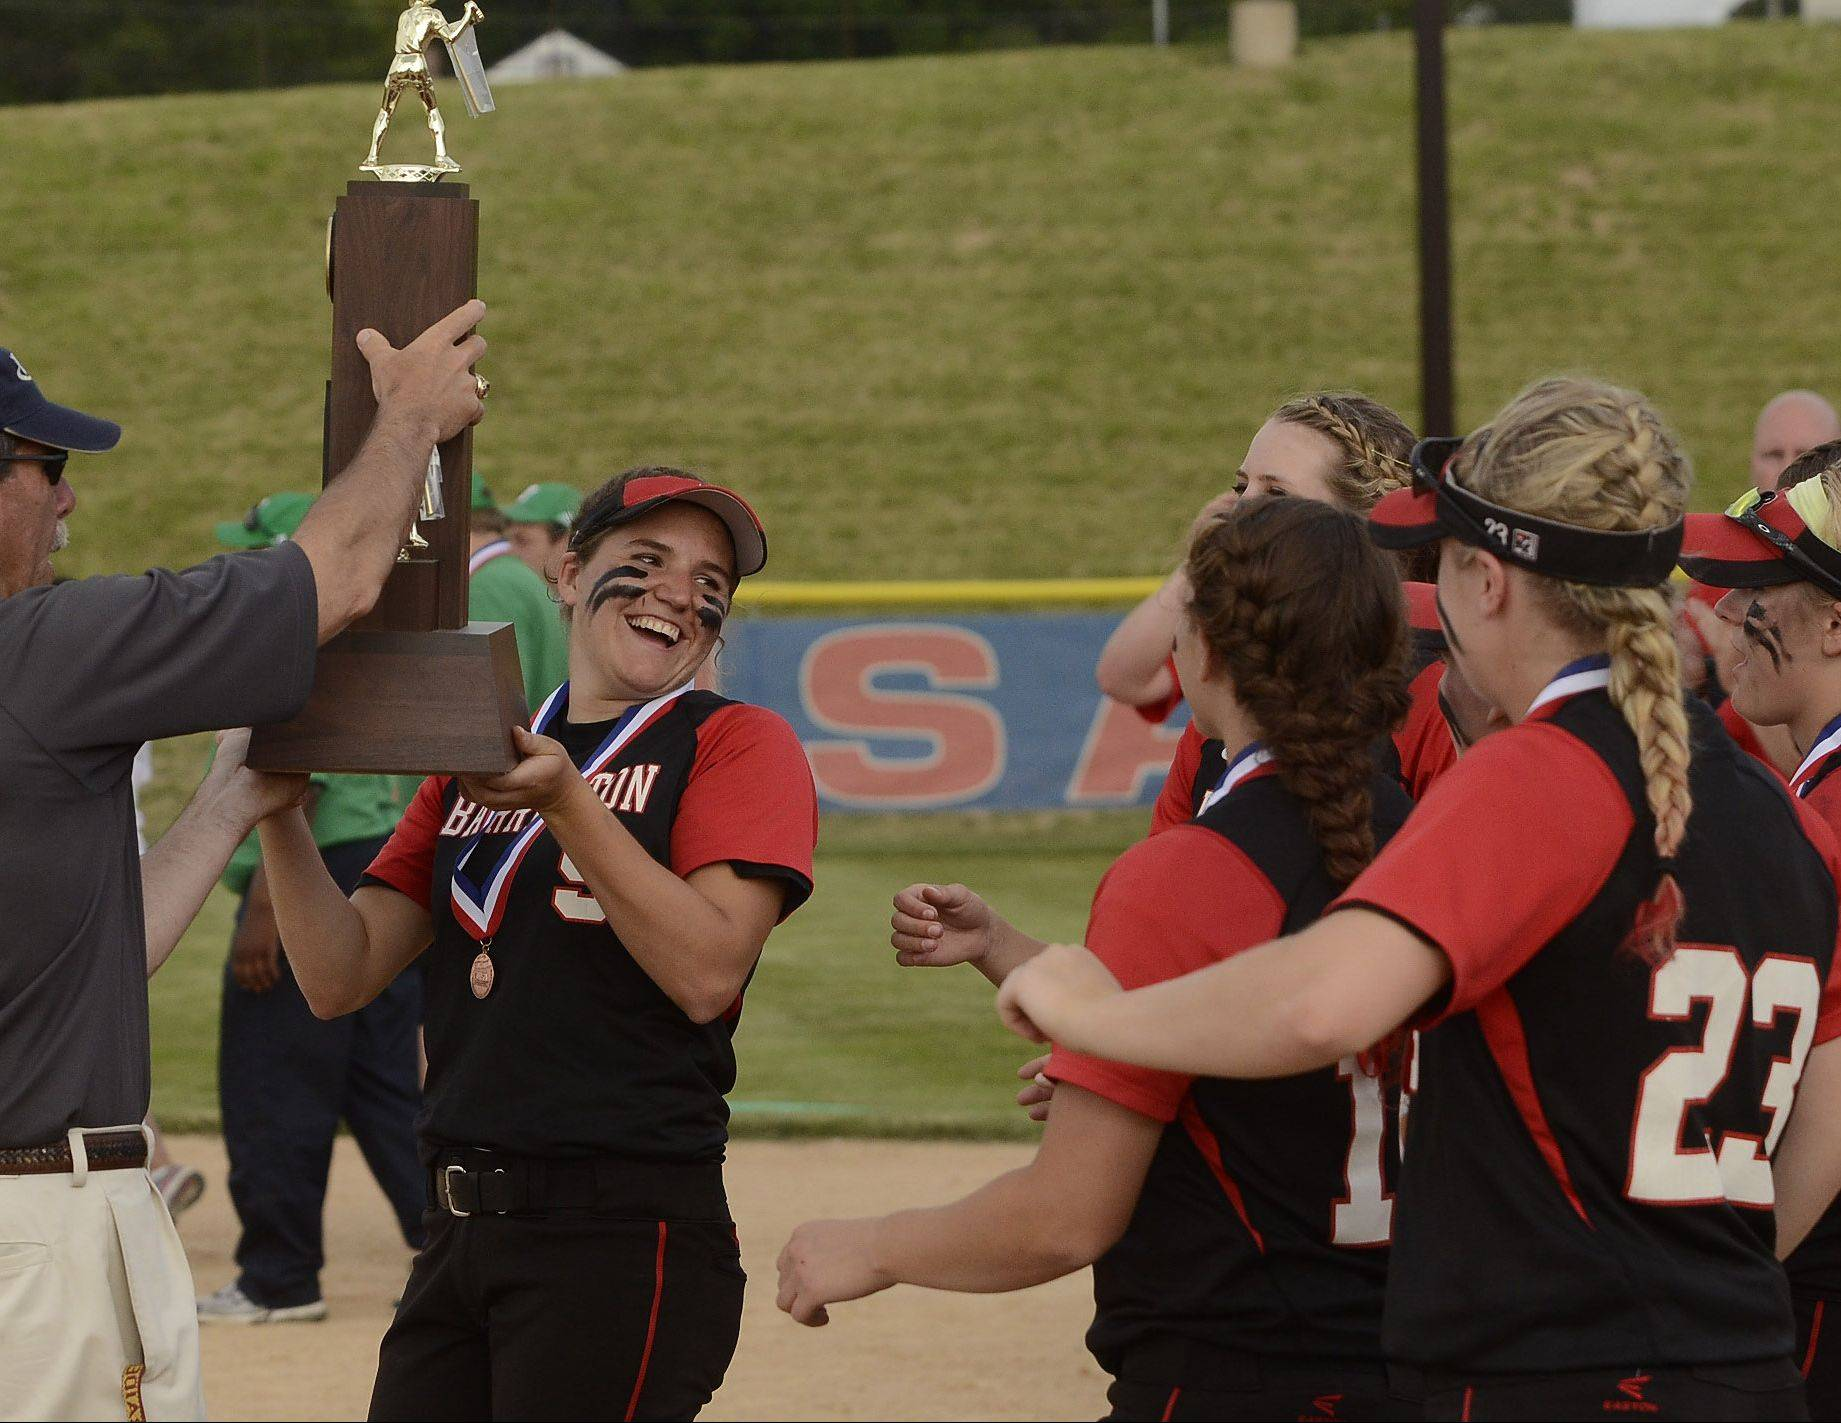 Barrington's Maggie O'Hara hoists the Class 4A third-place trophy after Barrington defeated York 5-1.